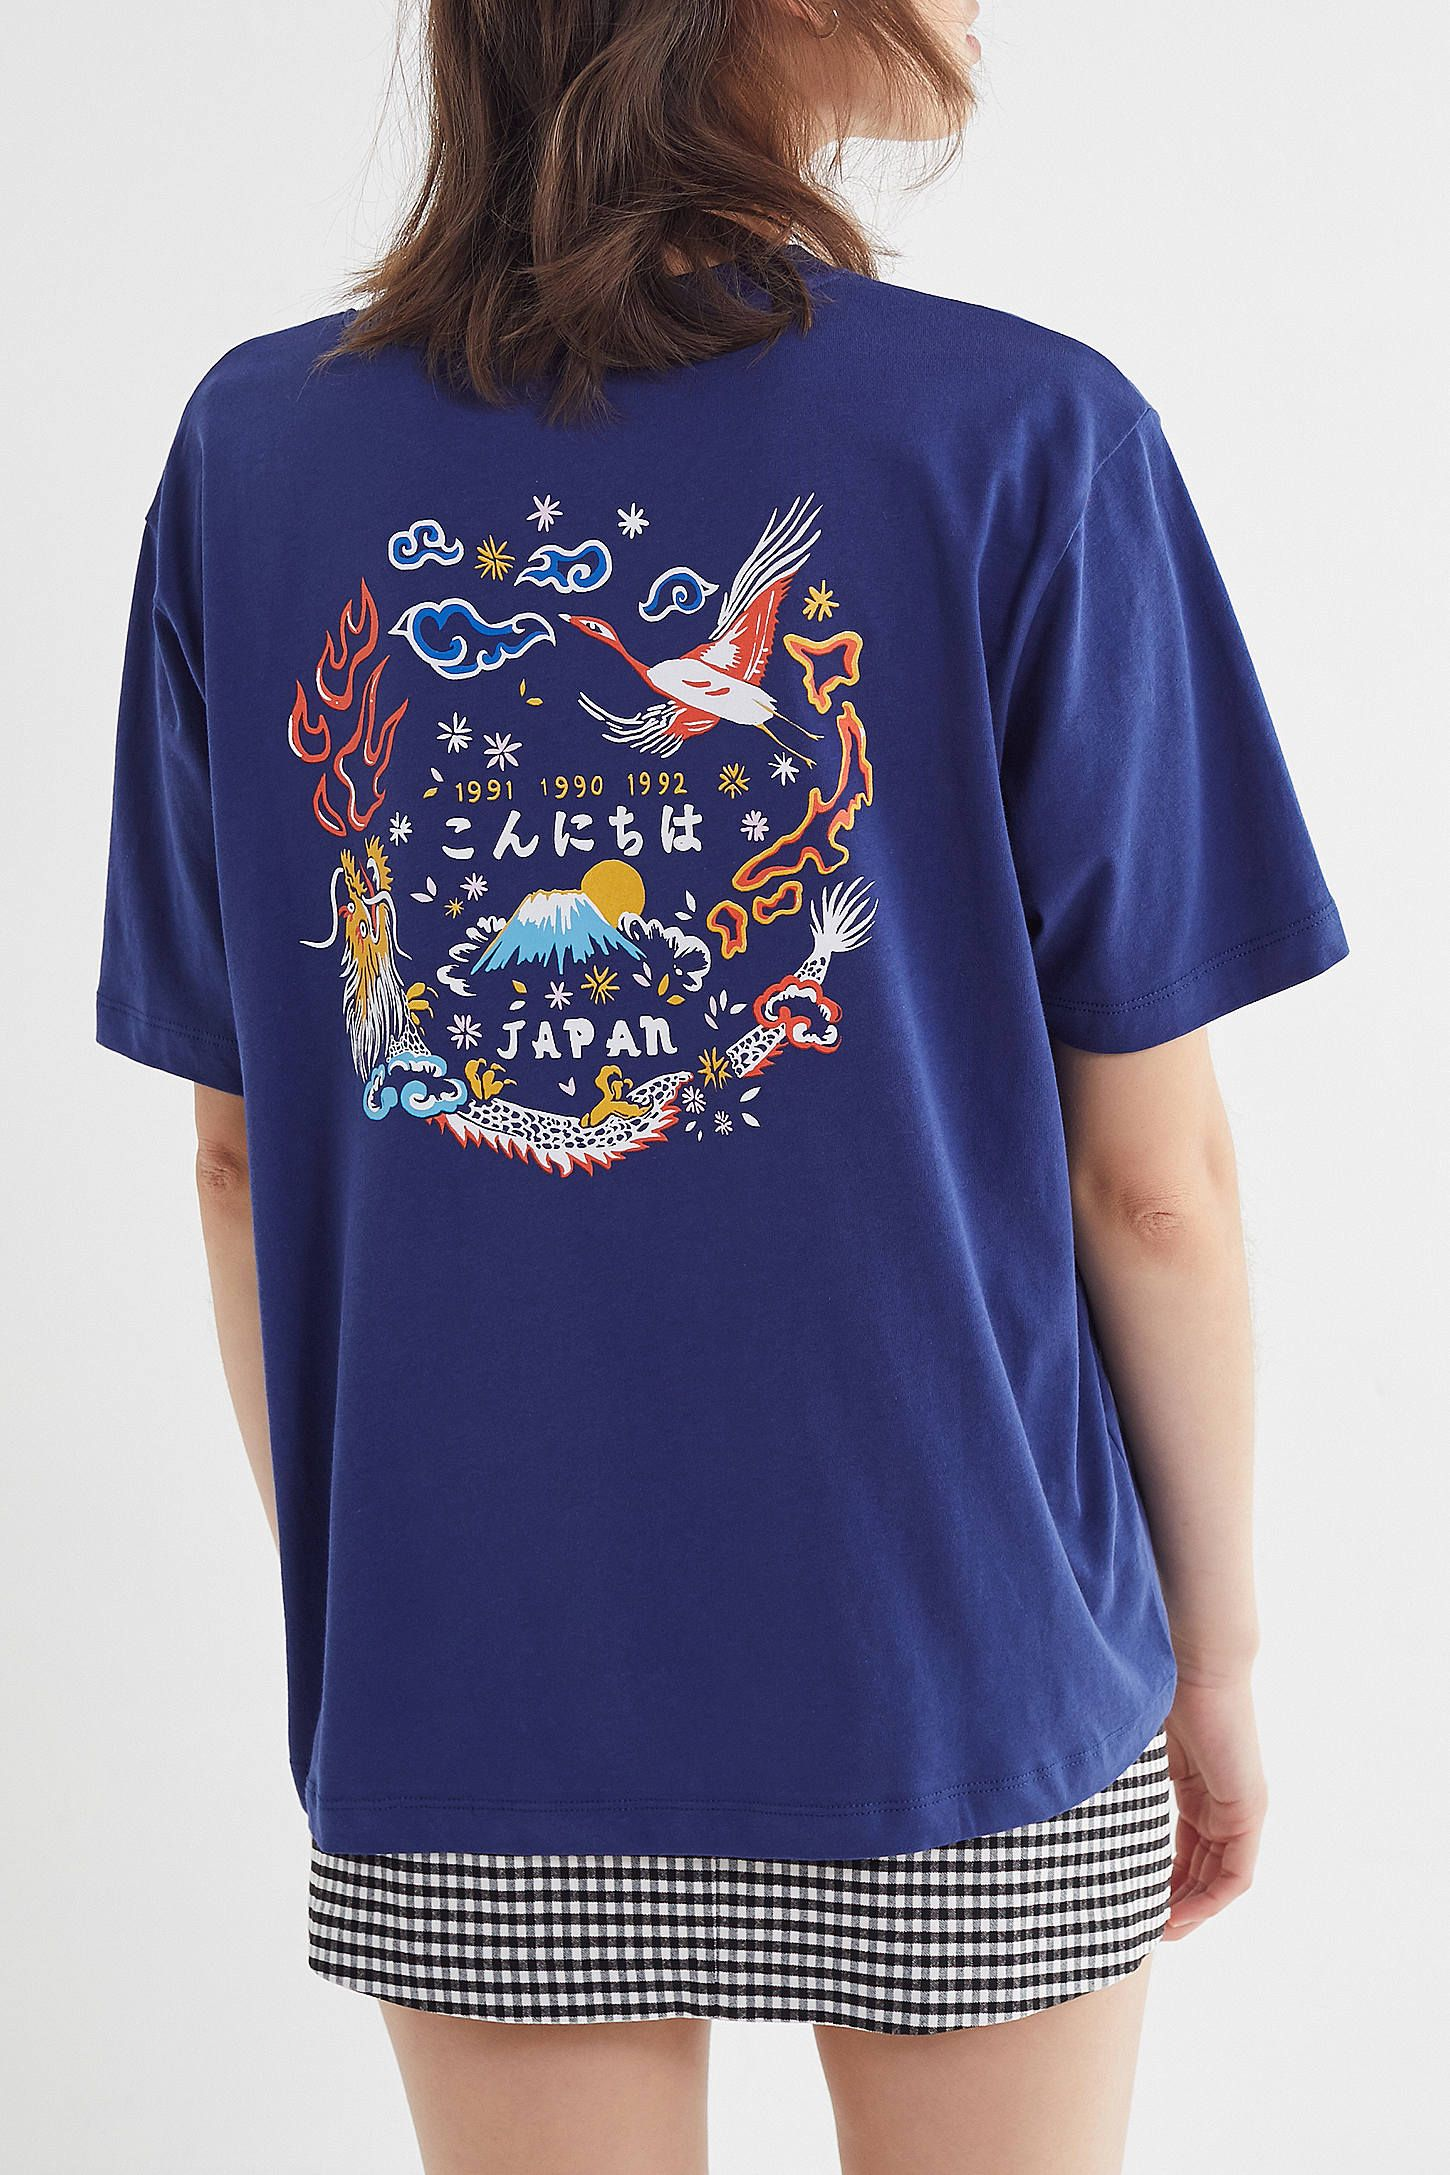 e12d5f93e Embroidered Japanese Art Tee in 2019 | Half | Japanese art, Graphic ...